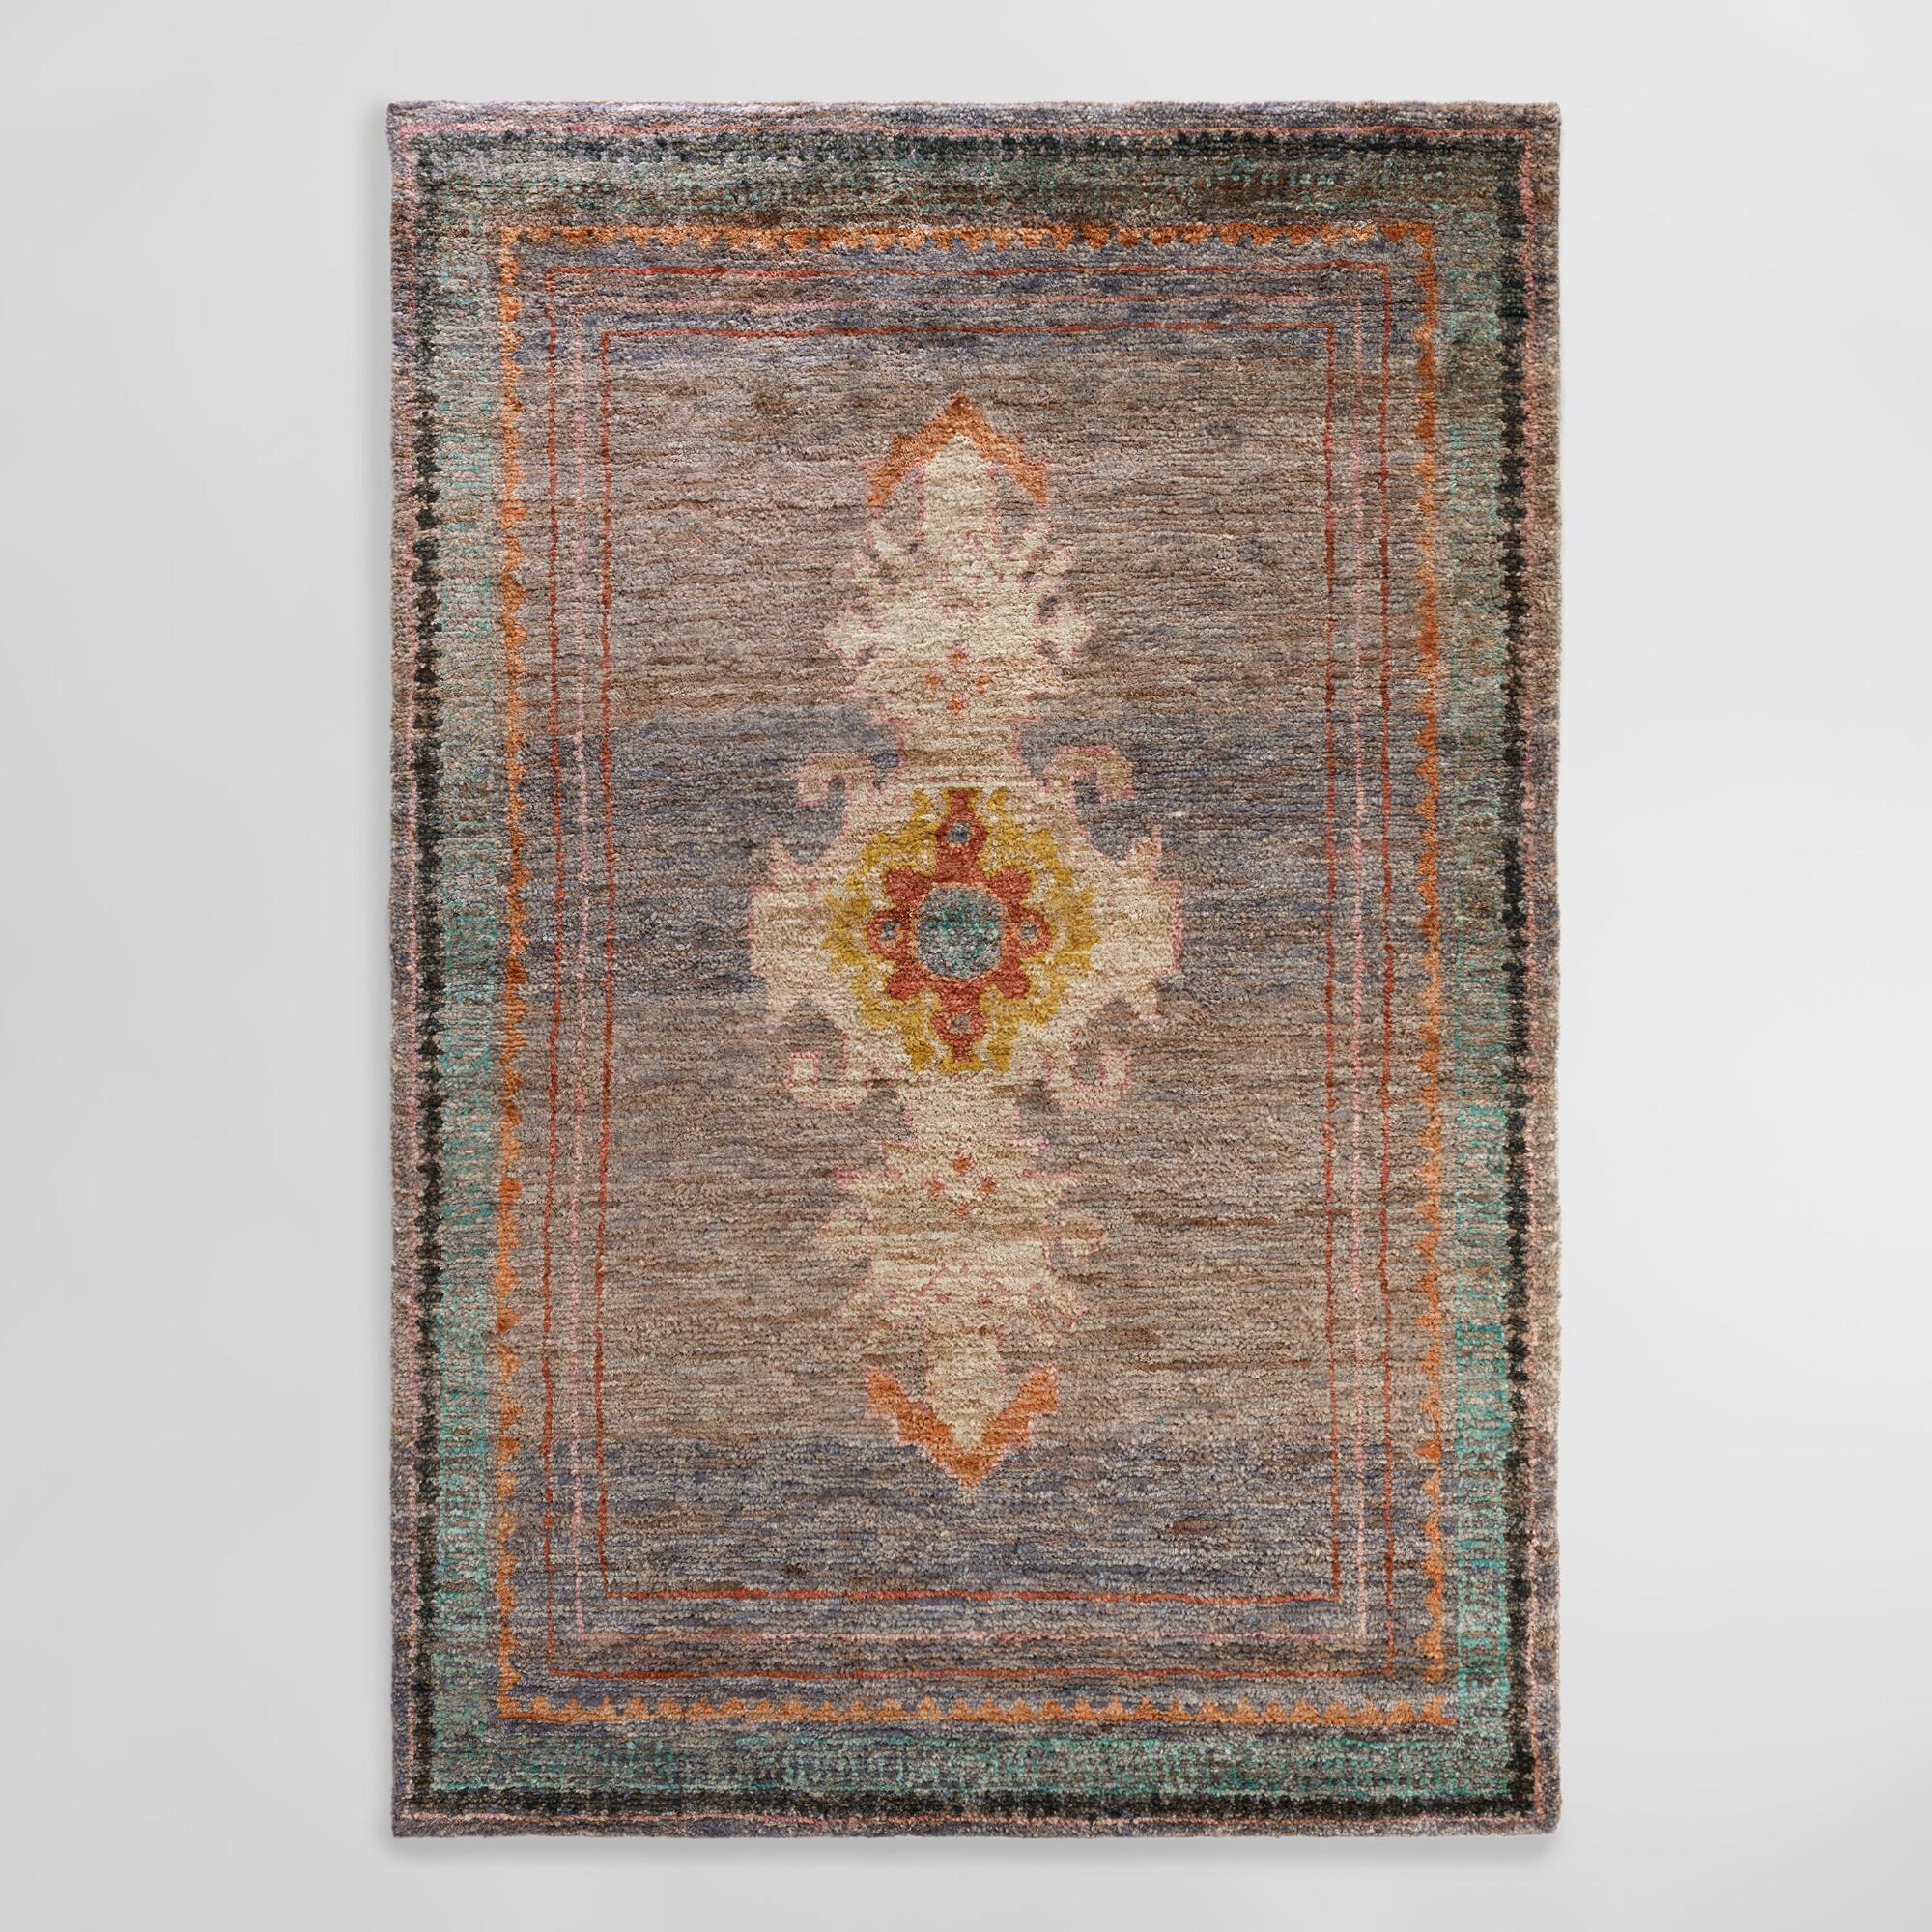 Washable Jute Rugs: 6'x9' Hand Knotted Washed Jute Izmir Area Rug